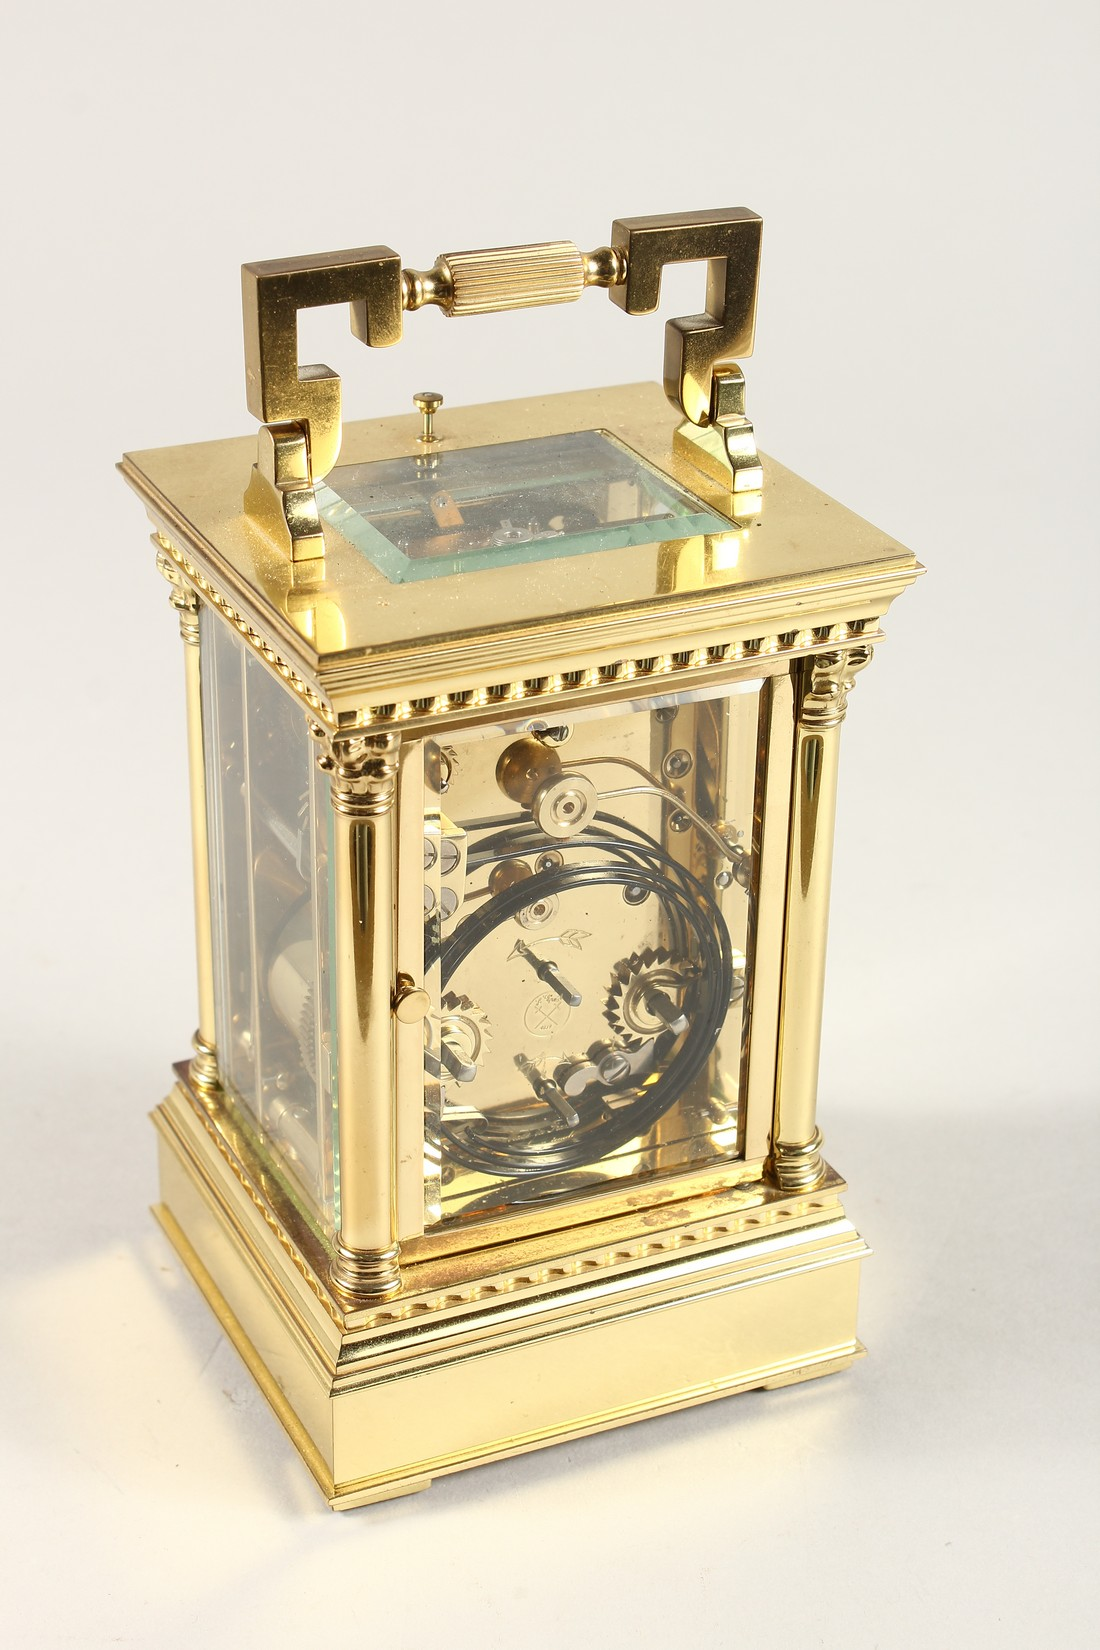 A GOOD ASPREYS BRASS CARRIAGE CLOCK with alarm. 6ins high. - Image 3 of 7